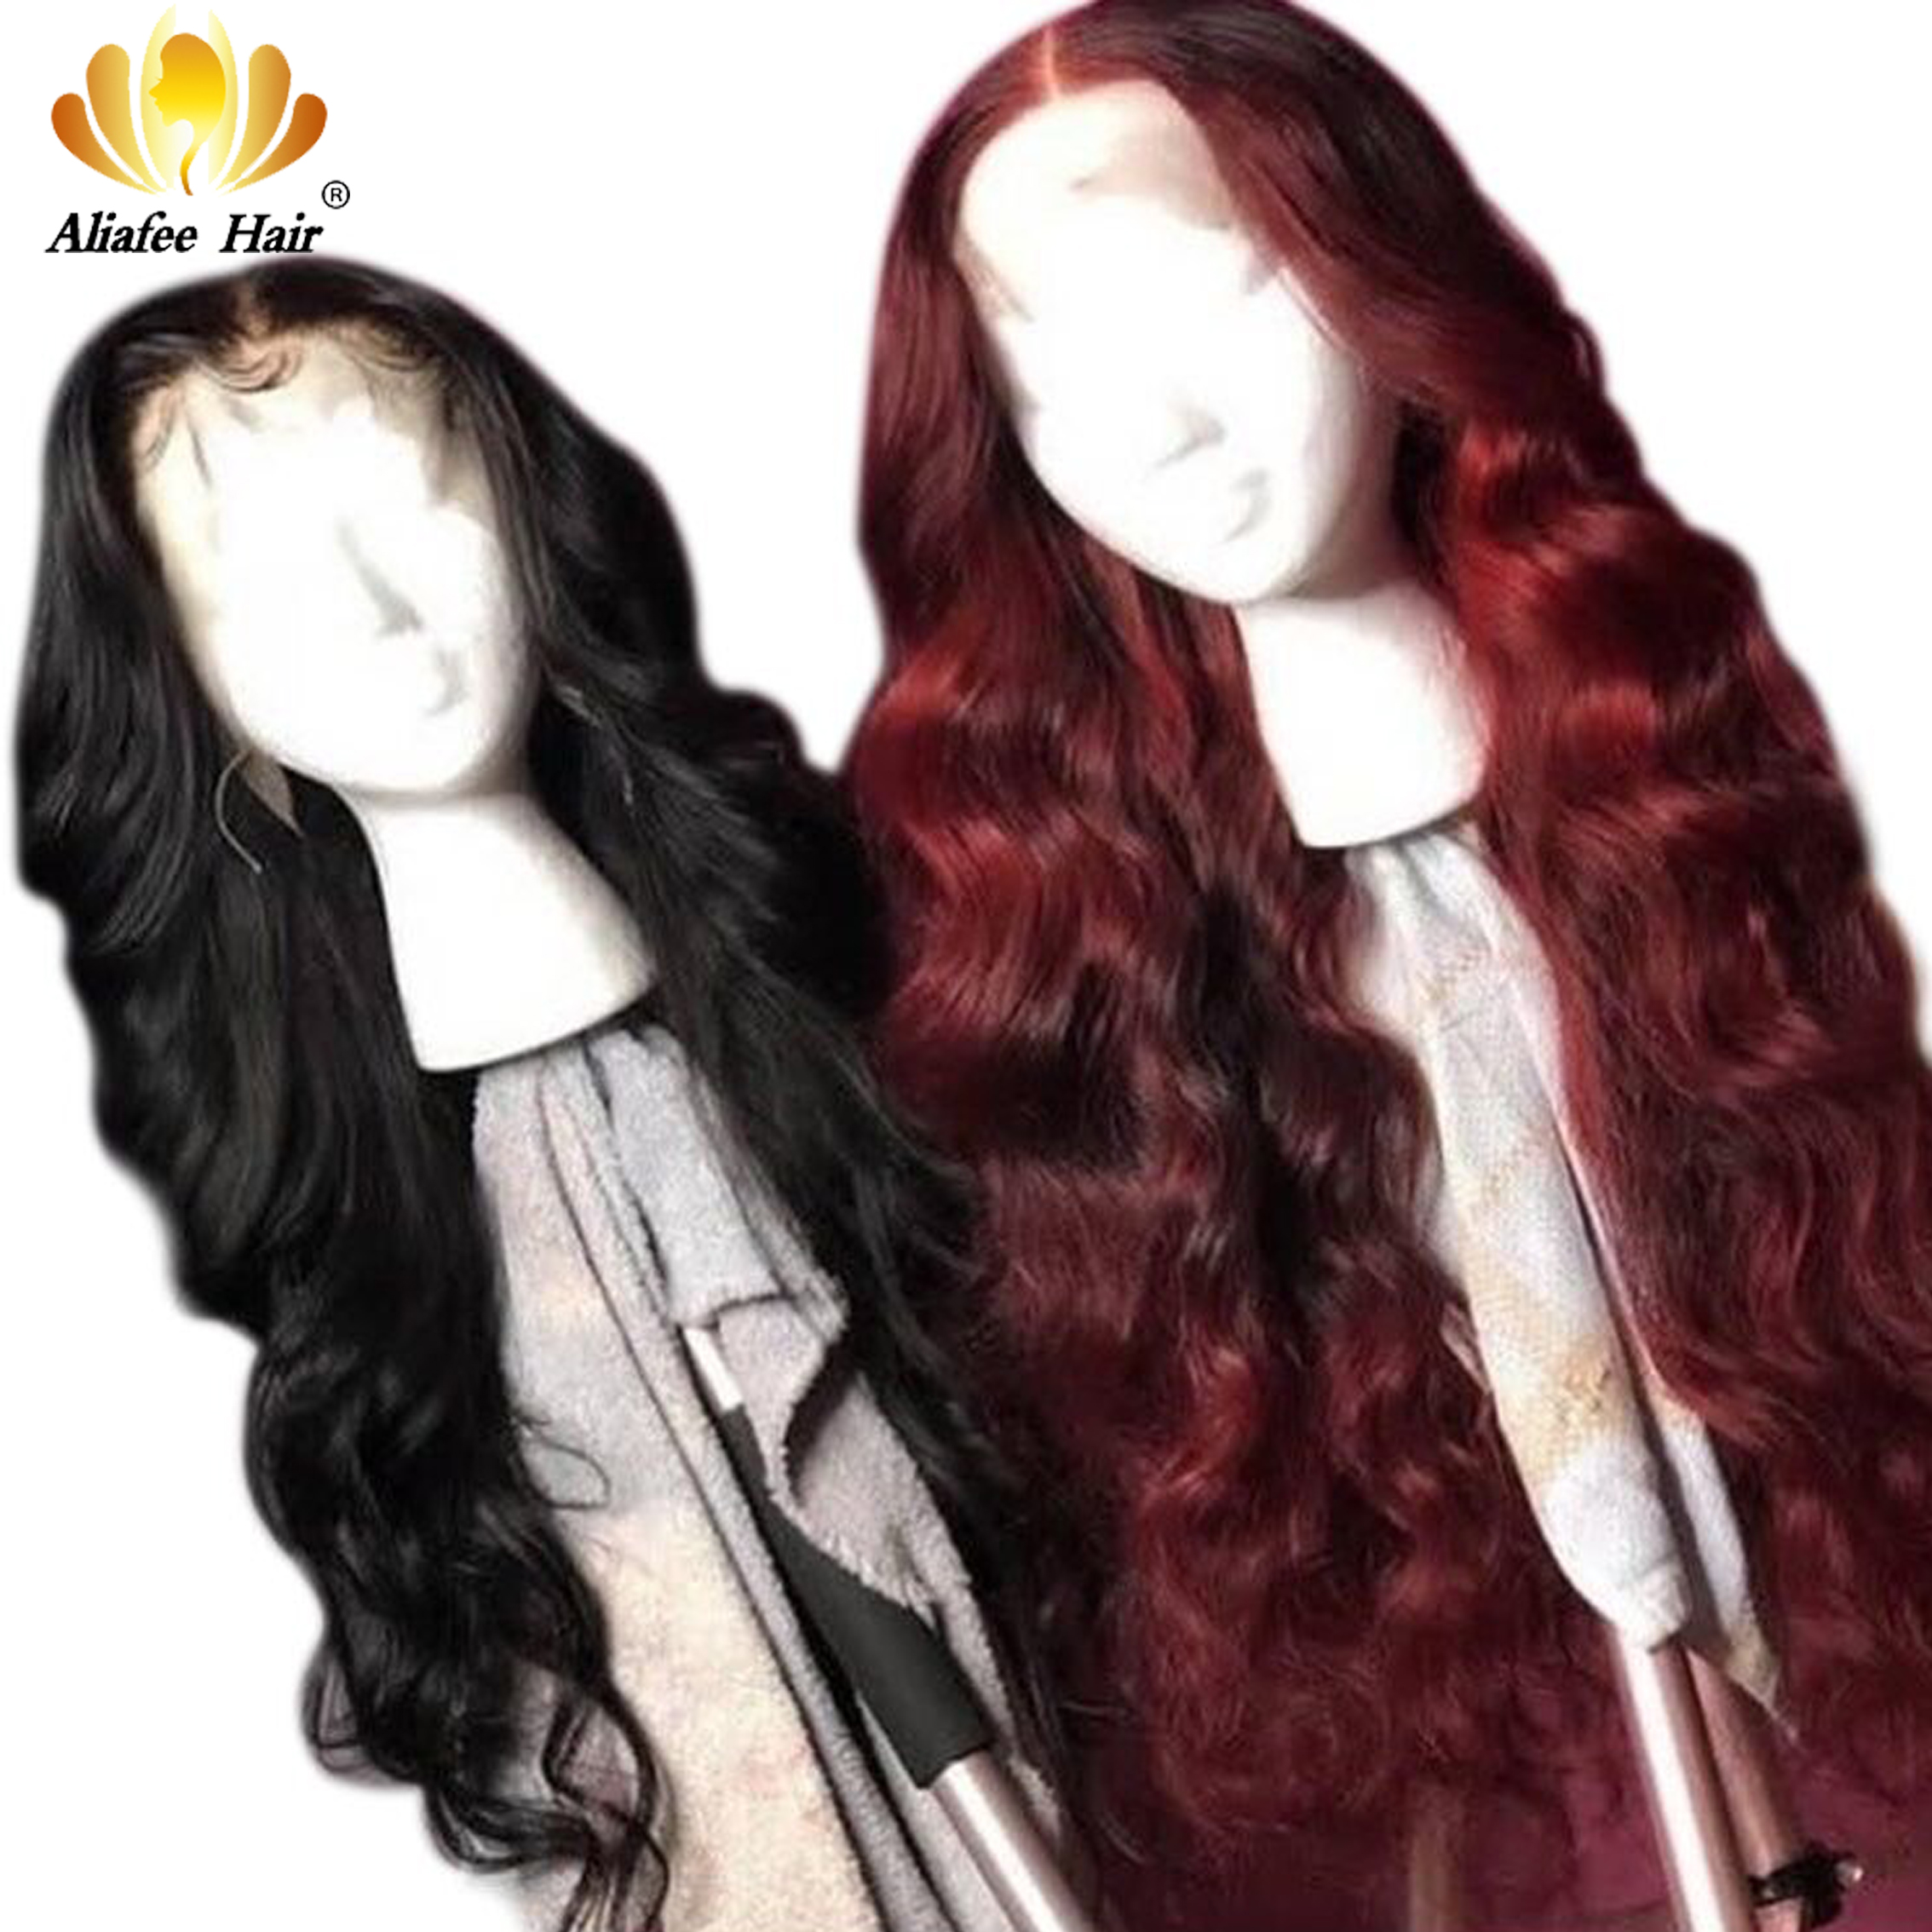 AliAfee 13x4 Lace Front Human Hair Wigs Brazilian Body Wave Wig Pre Plucked Remy Human Hair